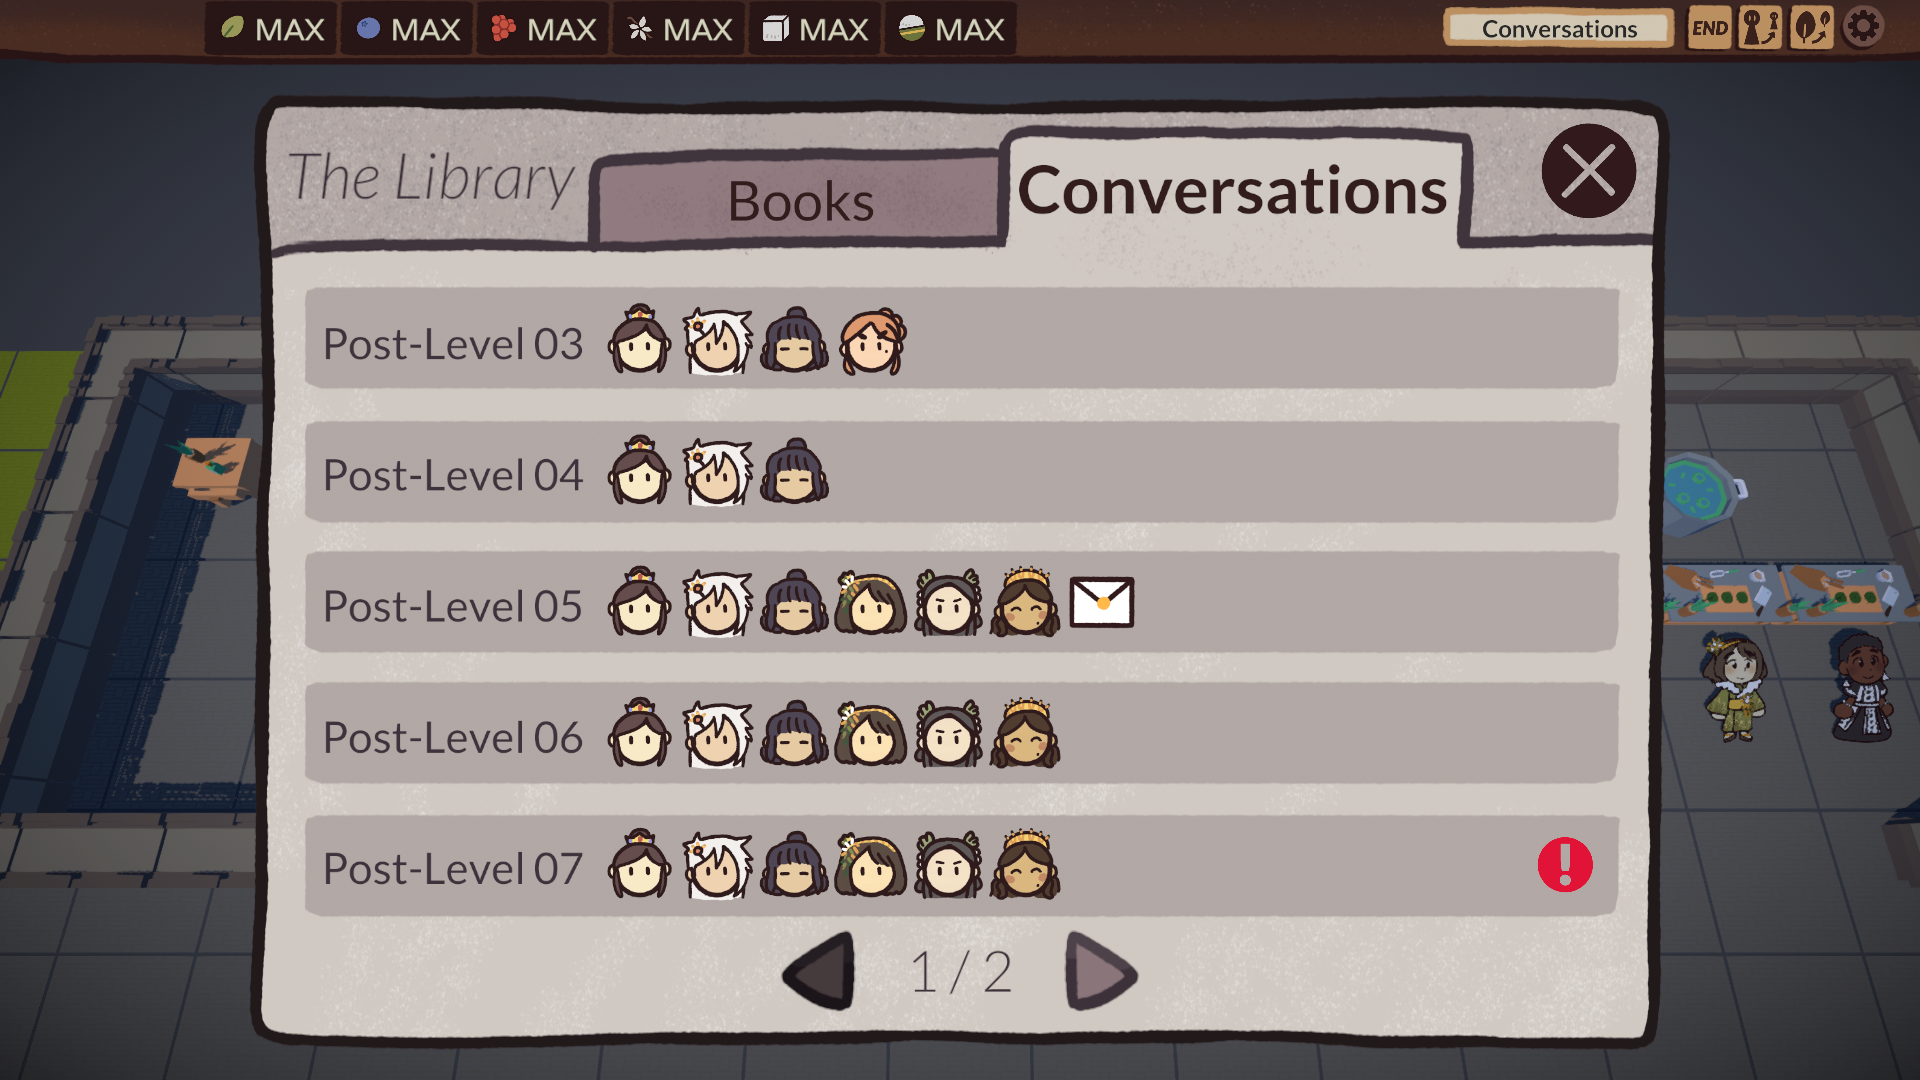 Conversations Tab of the Library